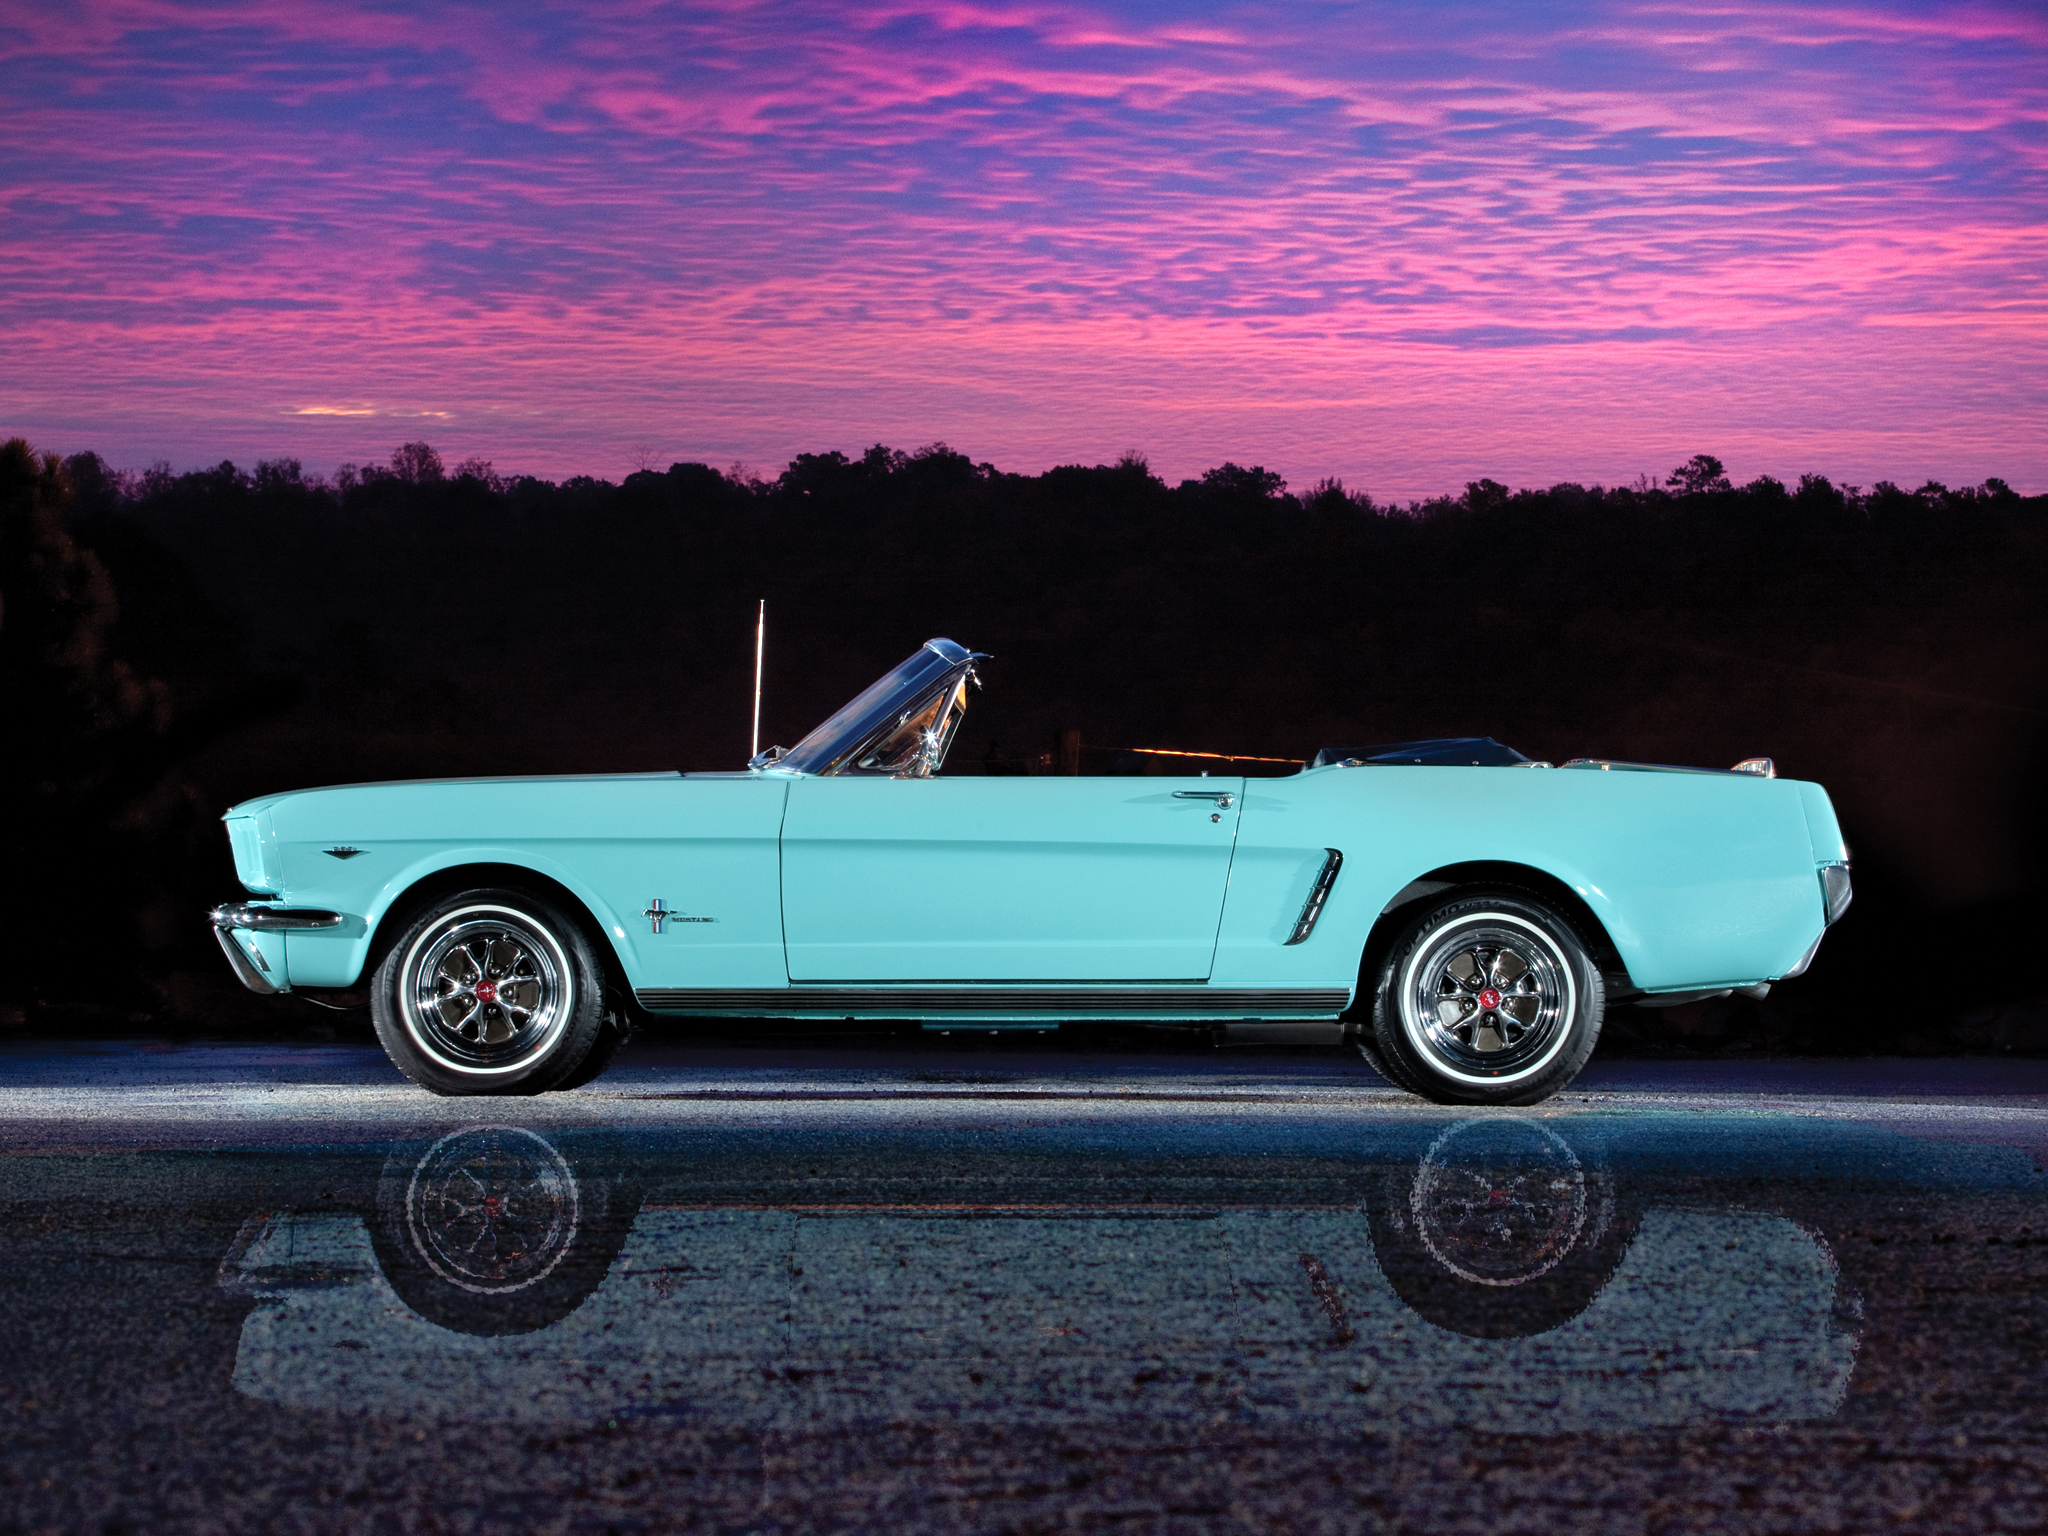 Classic Muscle Cars >> 1965 Ford Mustang Convertible classic muscle t wallpaper | 2048x1536 | 173126 | WallpaperUP